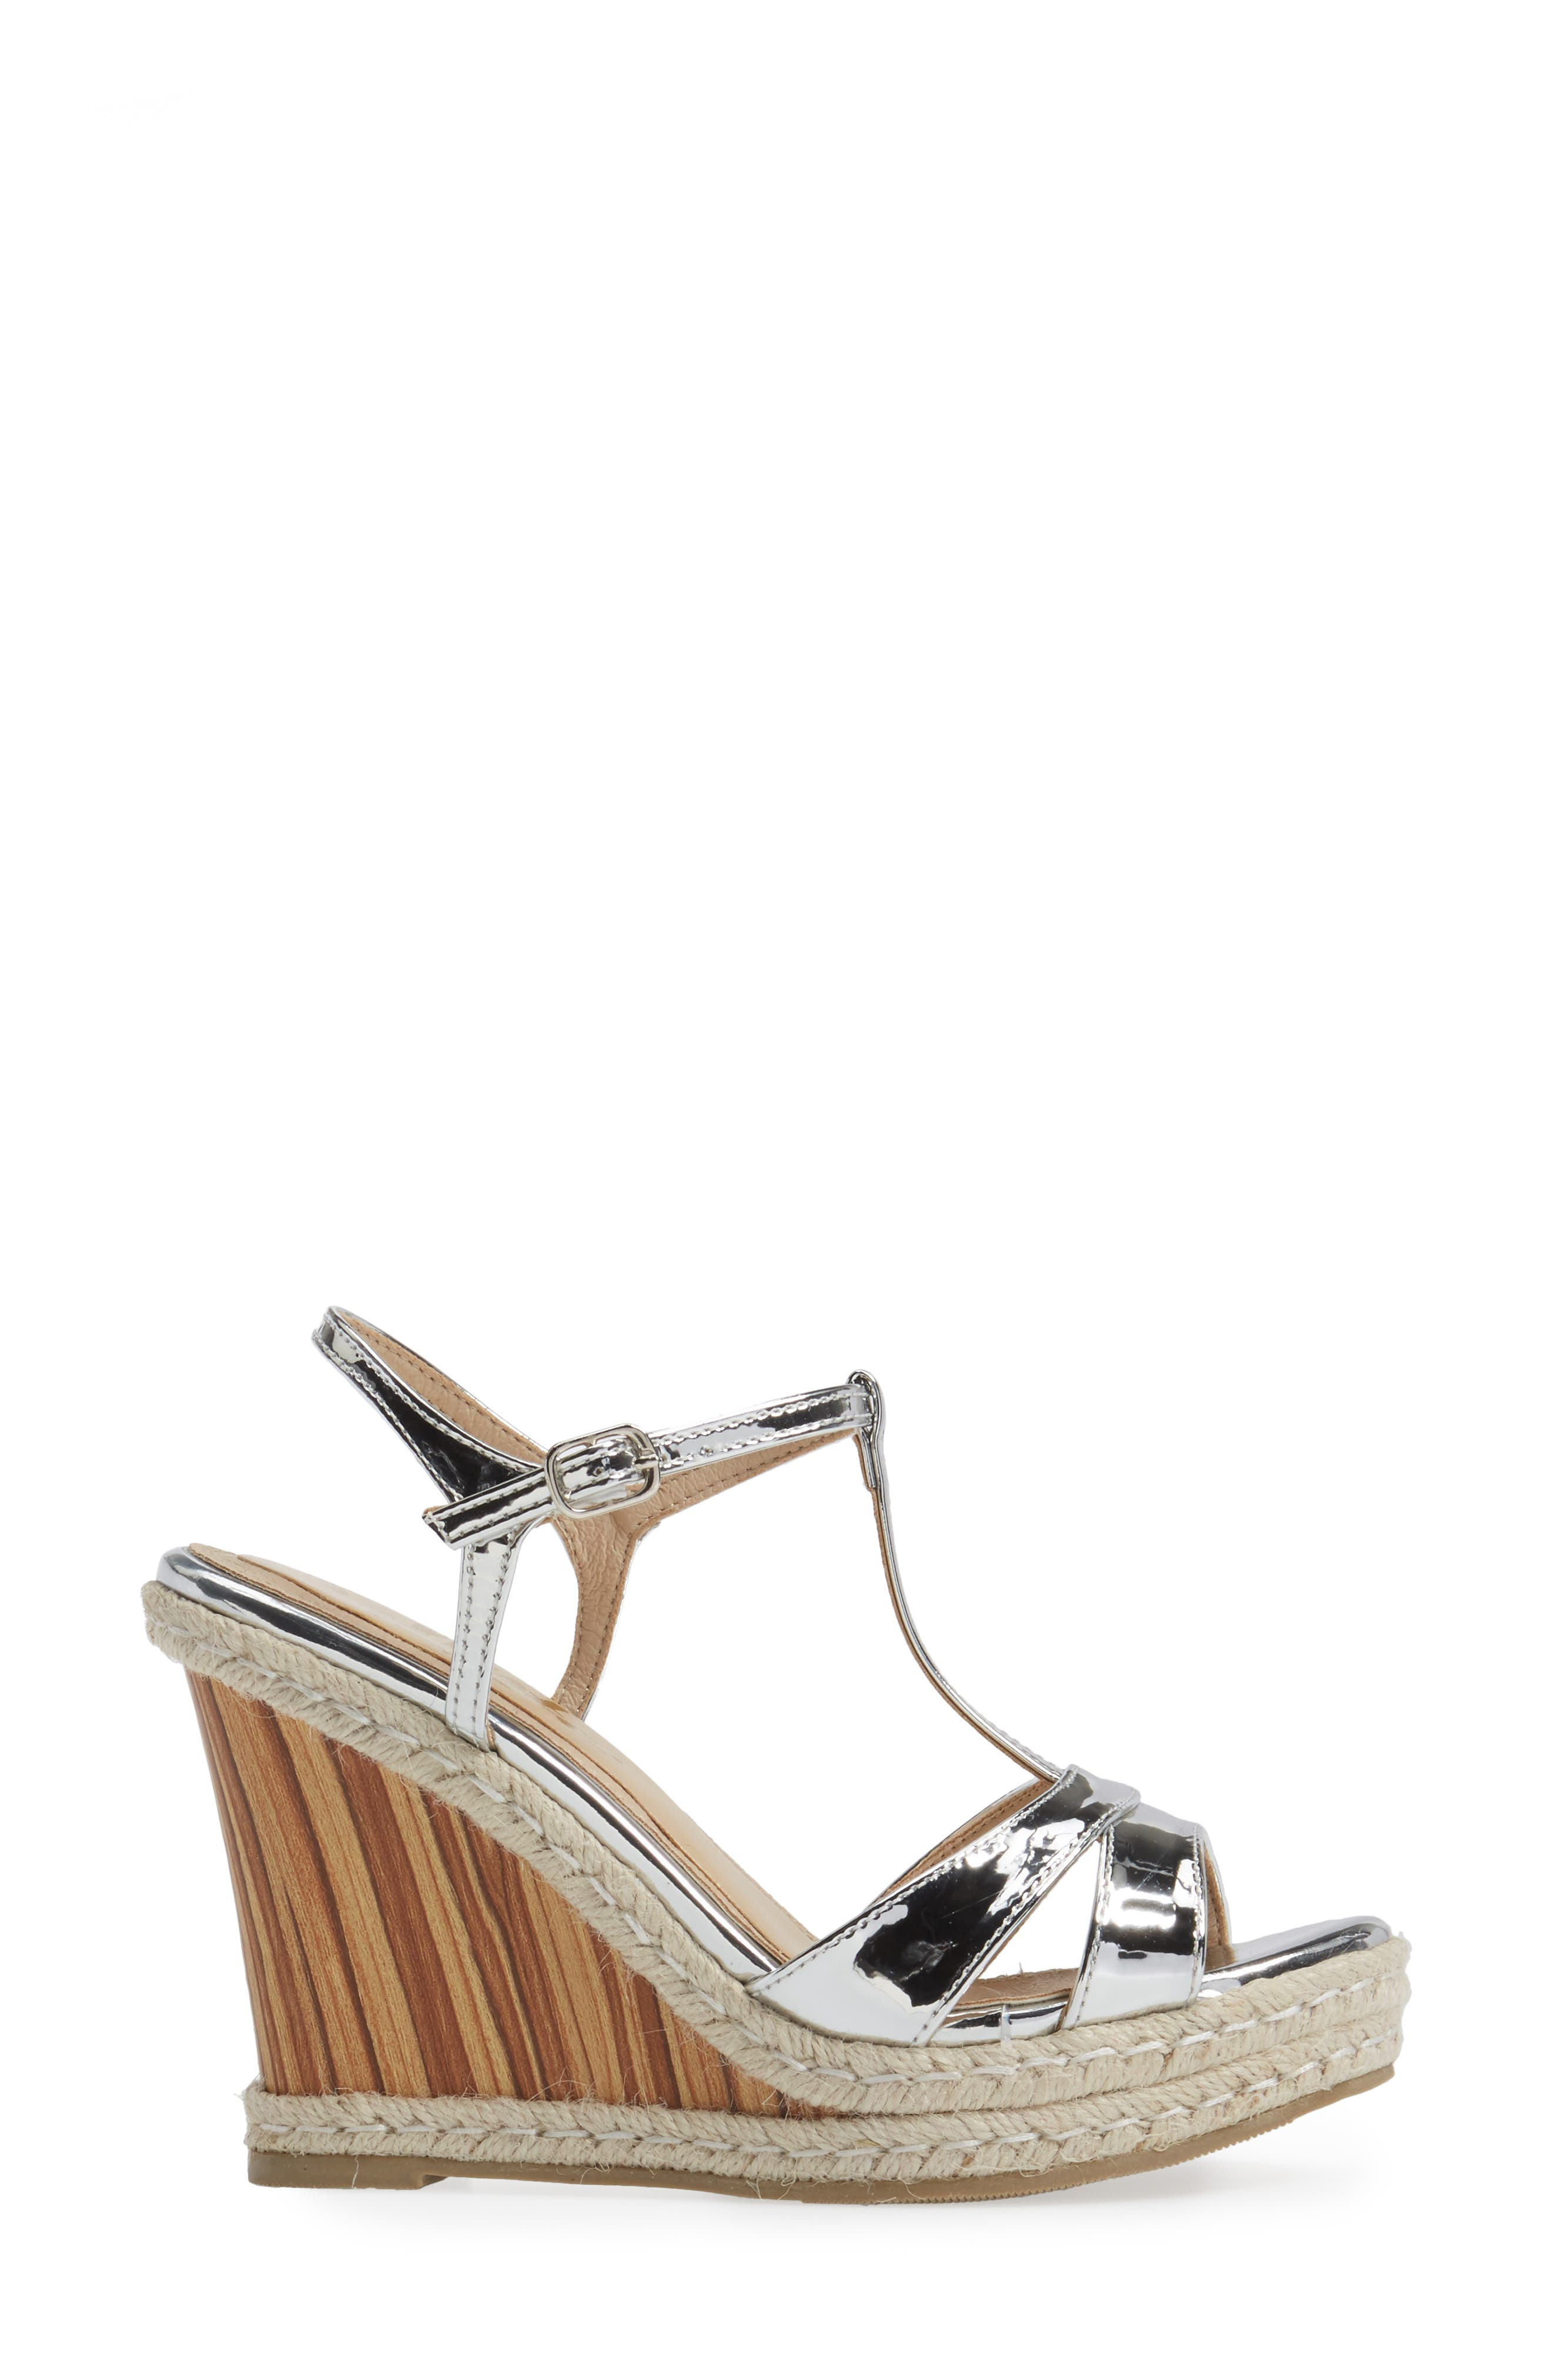 Alinna T-Strap Wedge Sandal,                             Alternate thumbnail 3, color,                             Silver Faux Leather